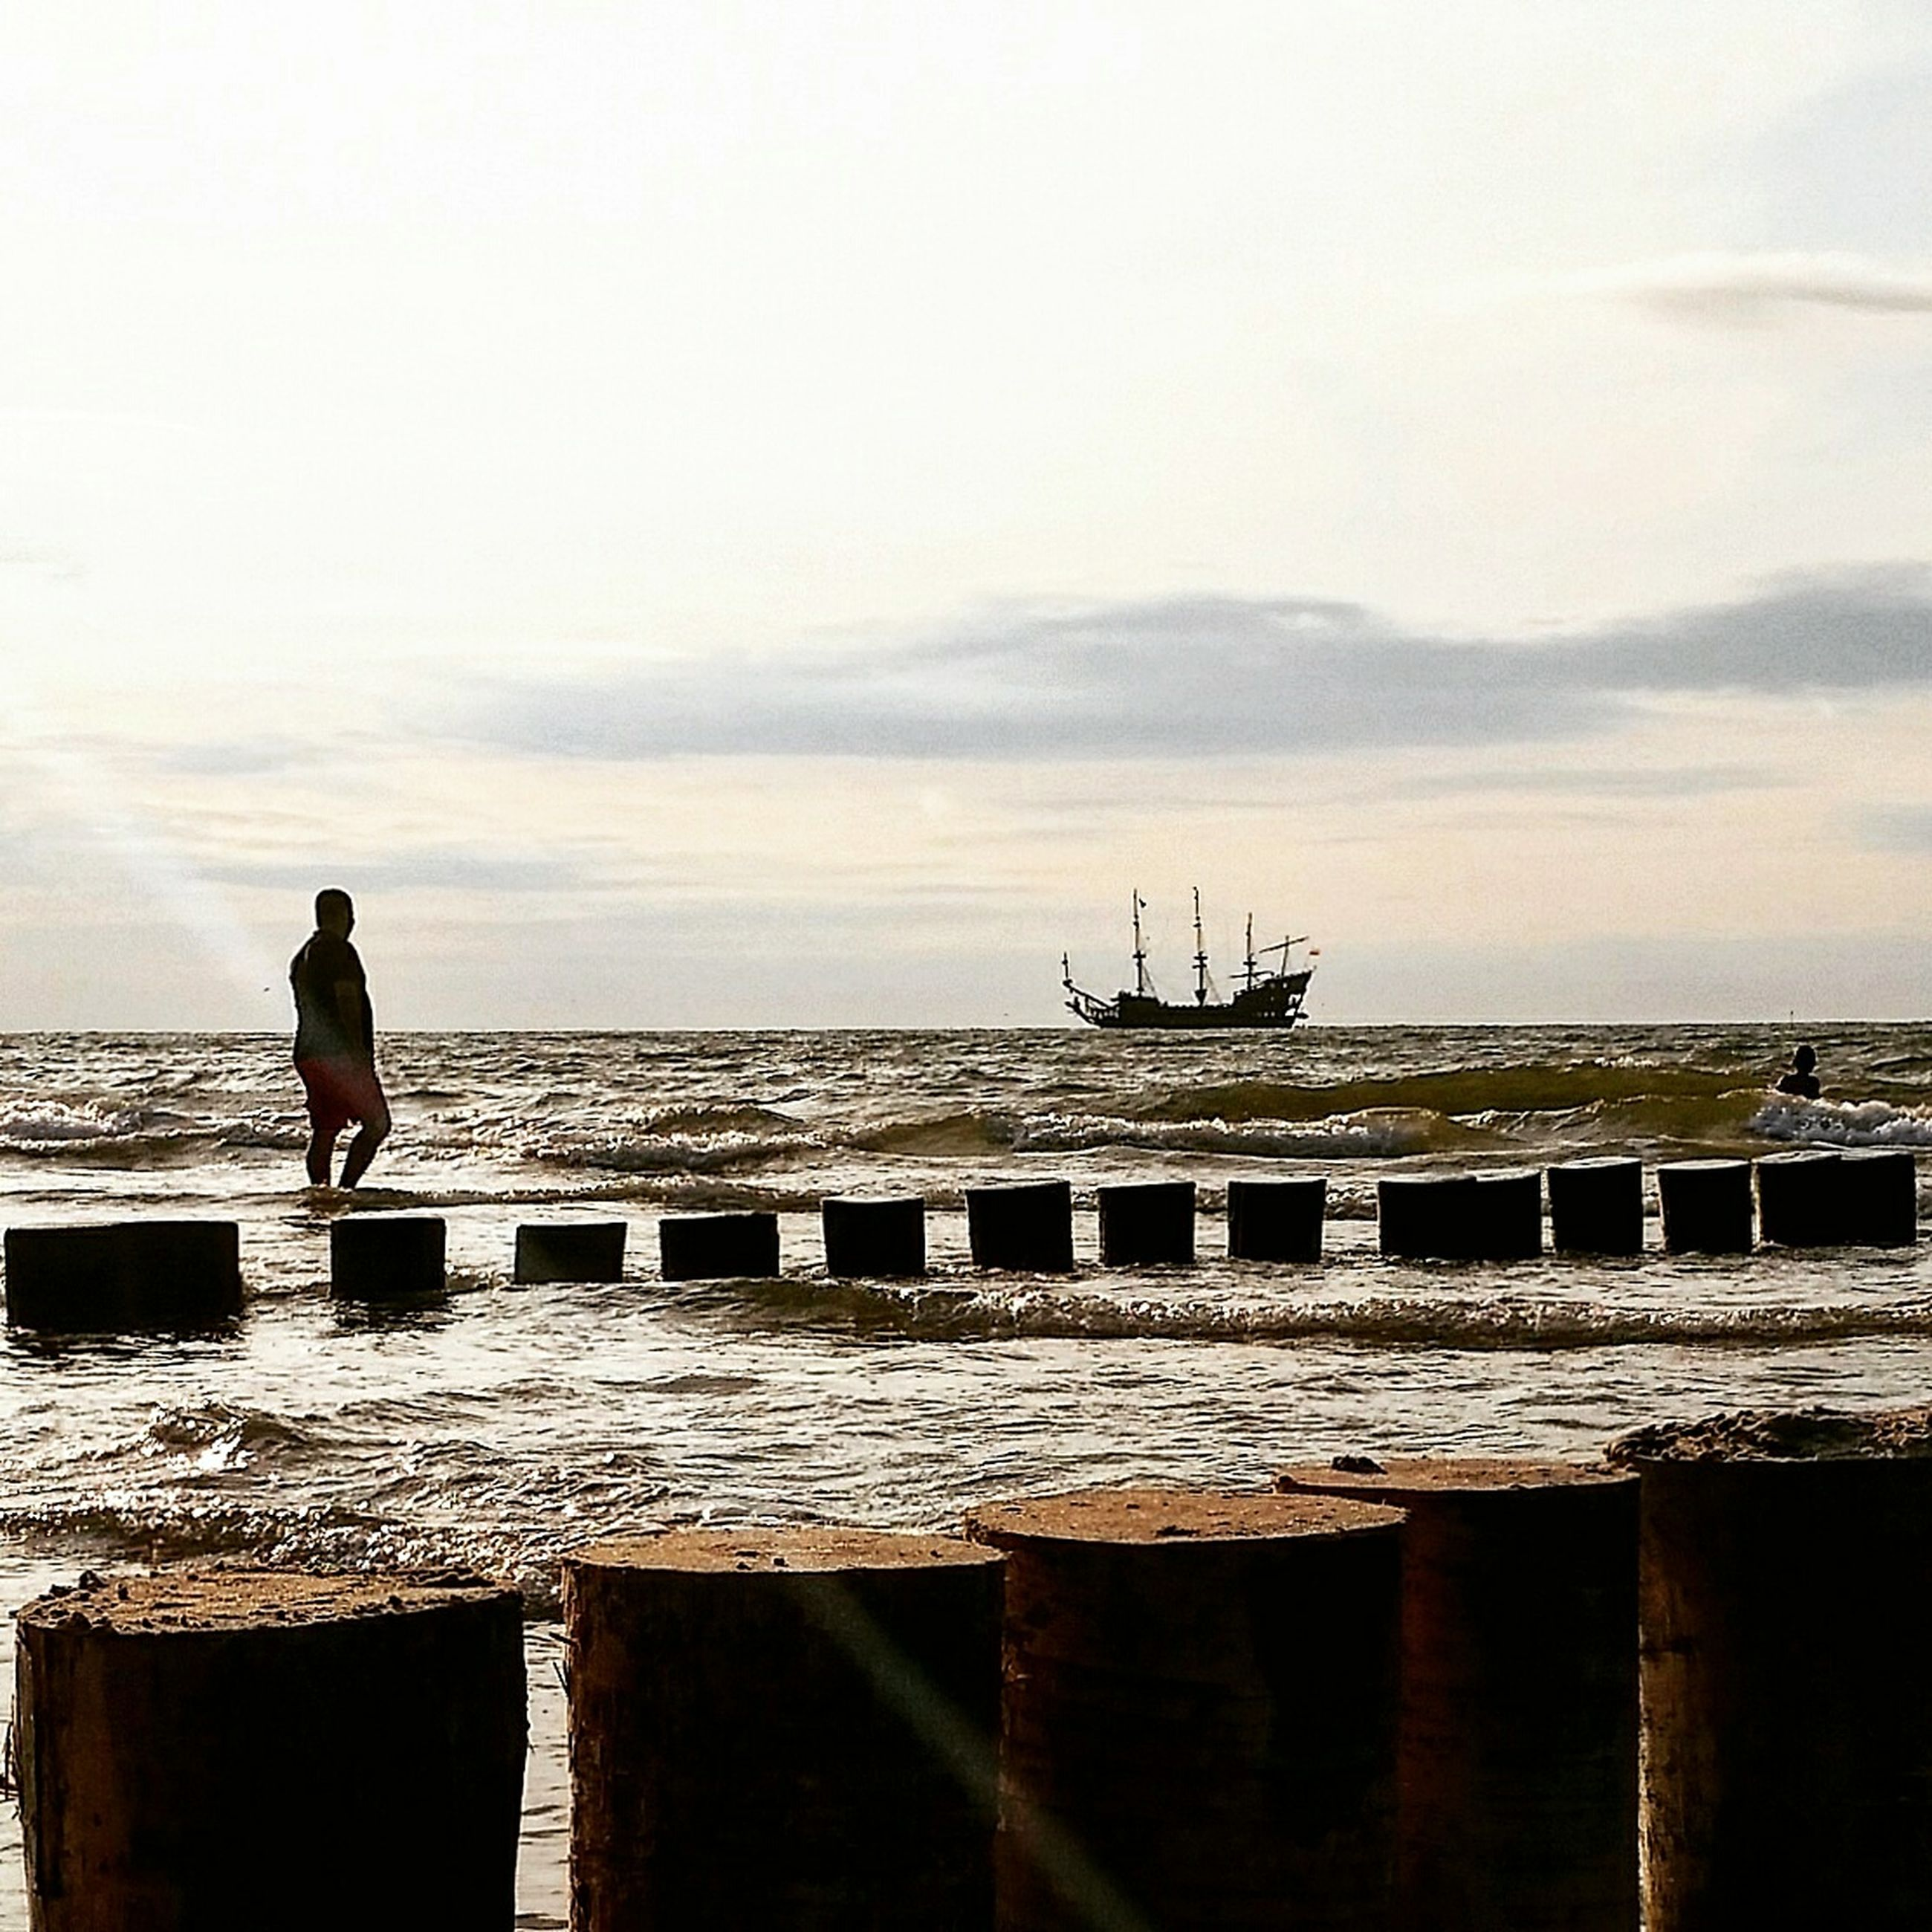 water, sea, sky, silhouette, pier, full length, cloud, tranquility, jetty, tranquil scene, cloud - sky, nature, outdoors, day, scenics, seascape, ocean, beauty in nature, promenade